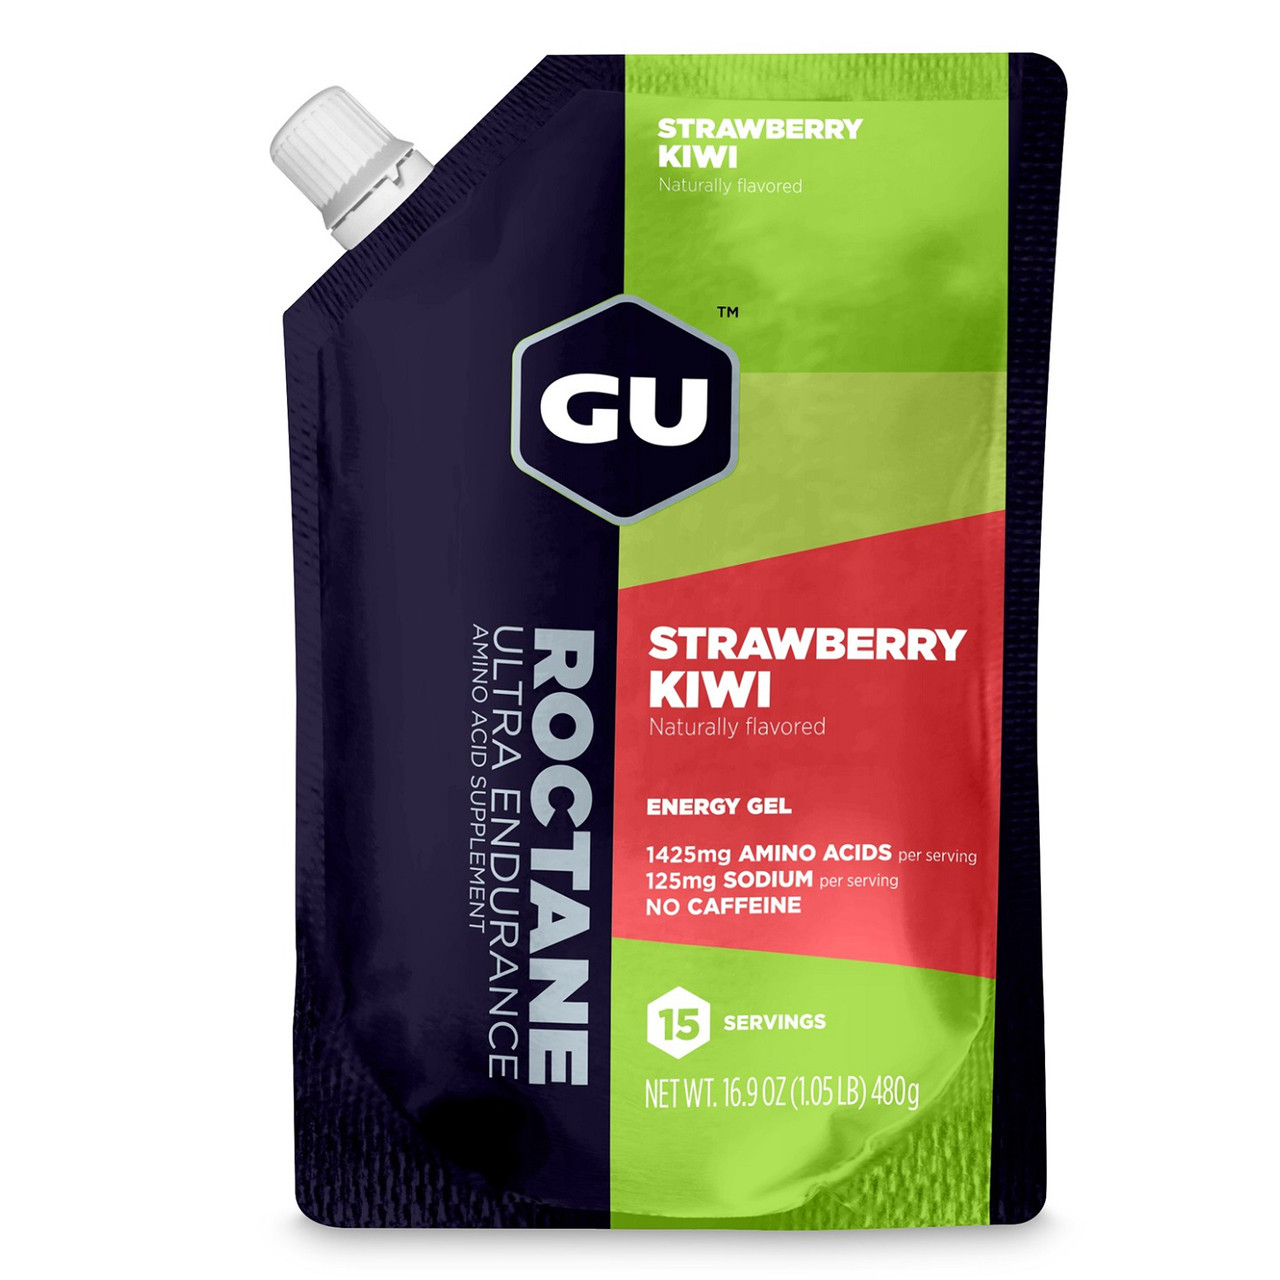 GU Roctane Energy Gel - 15 Servings price